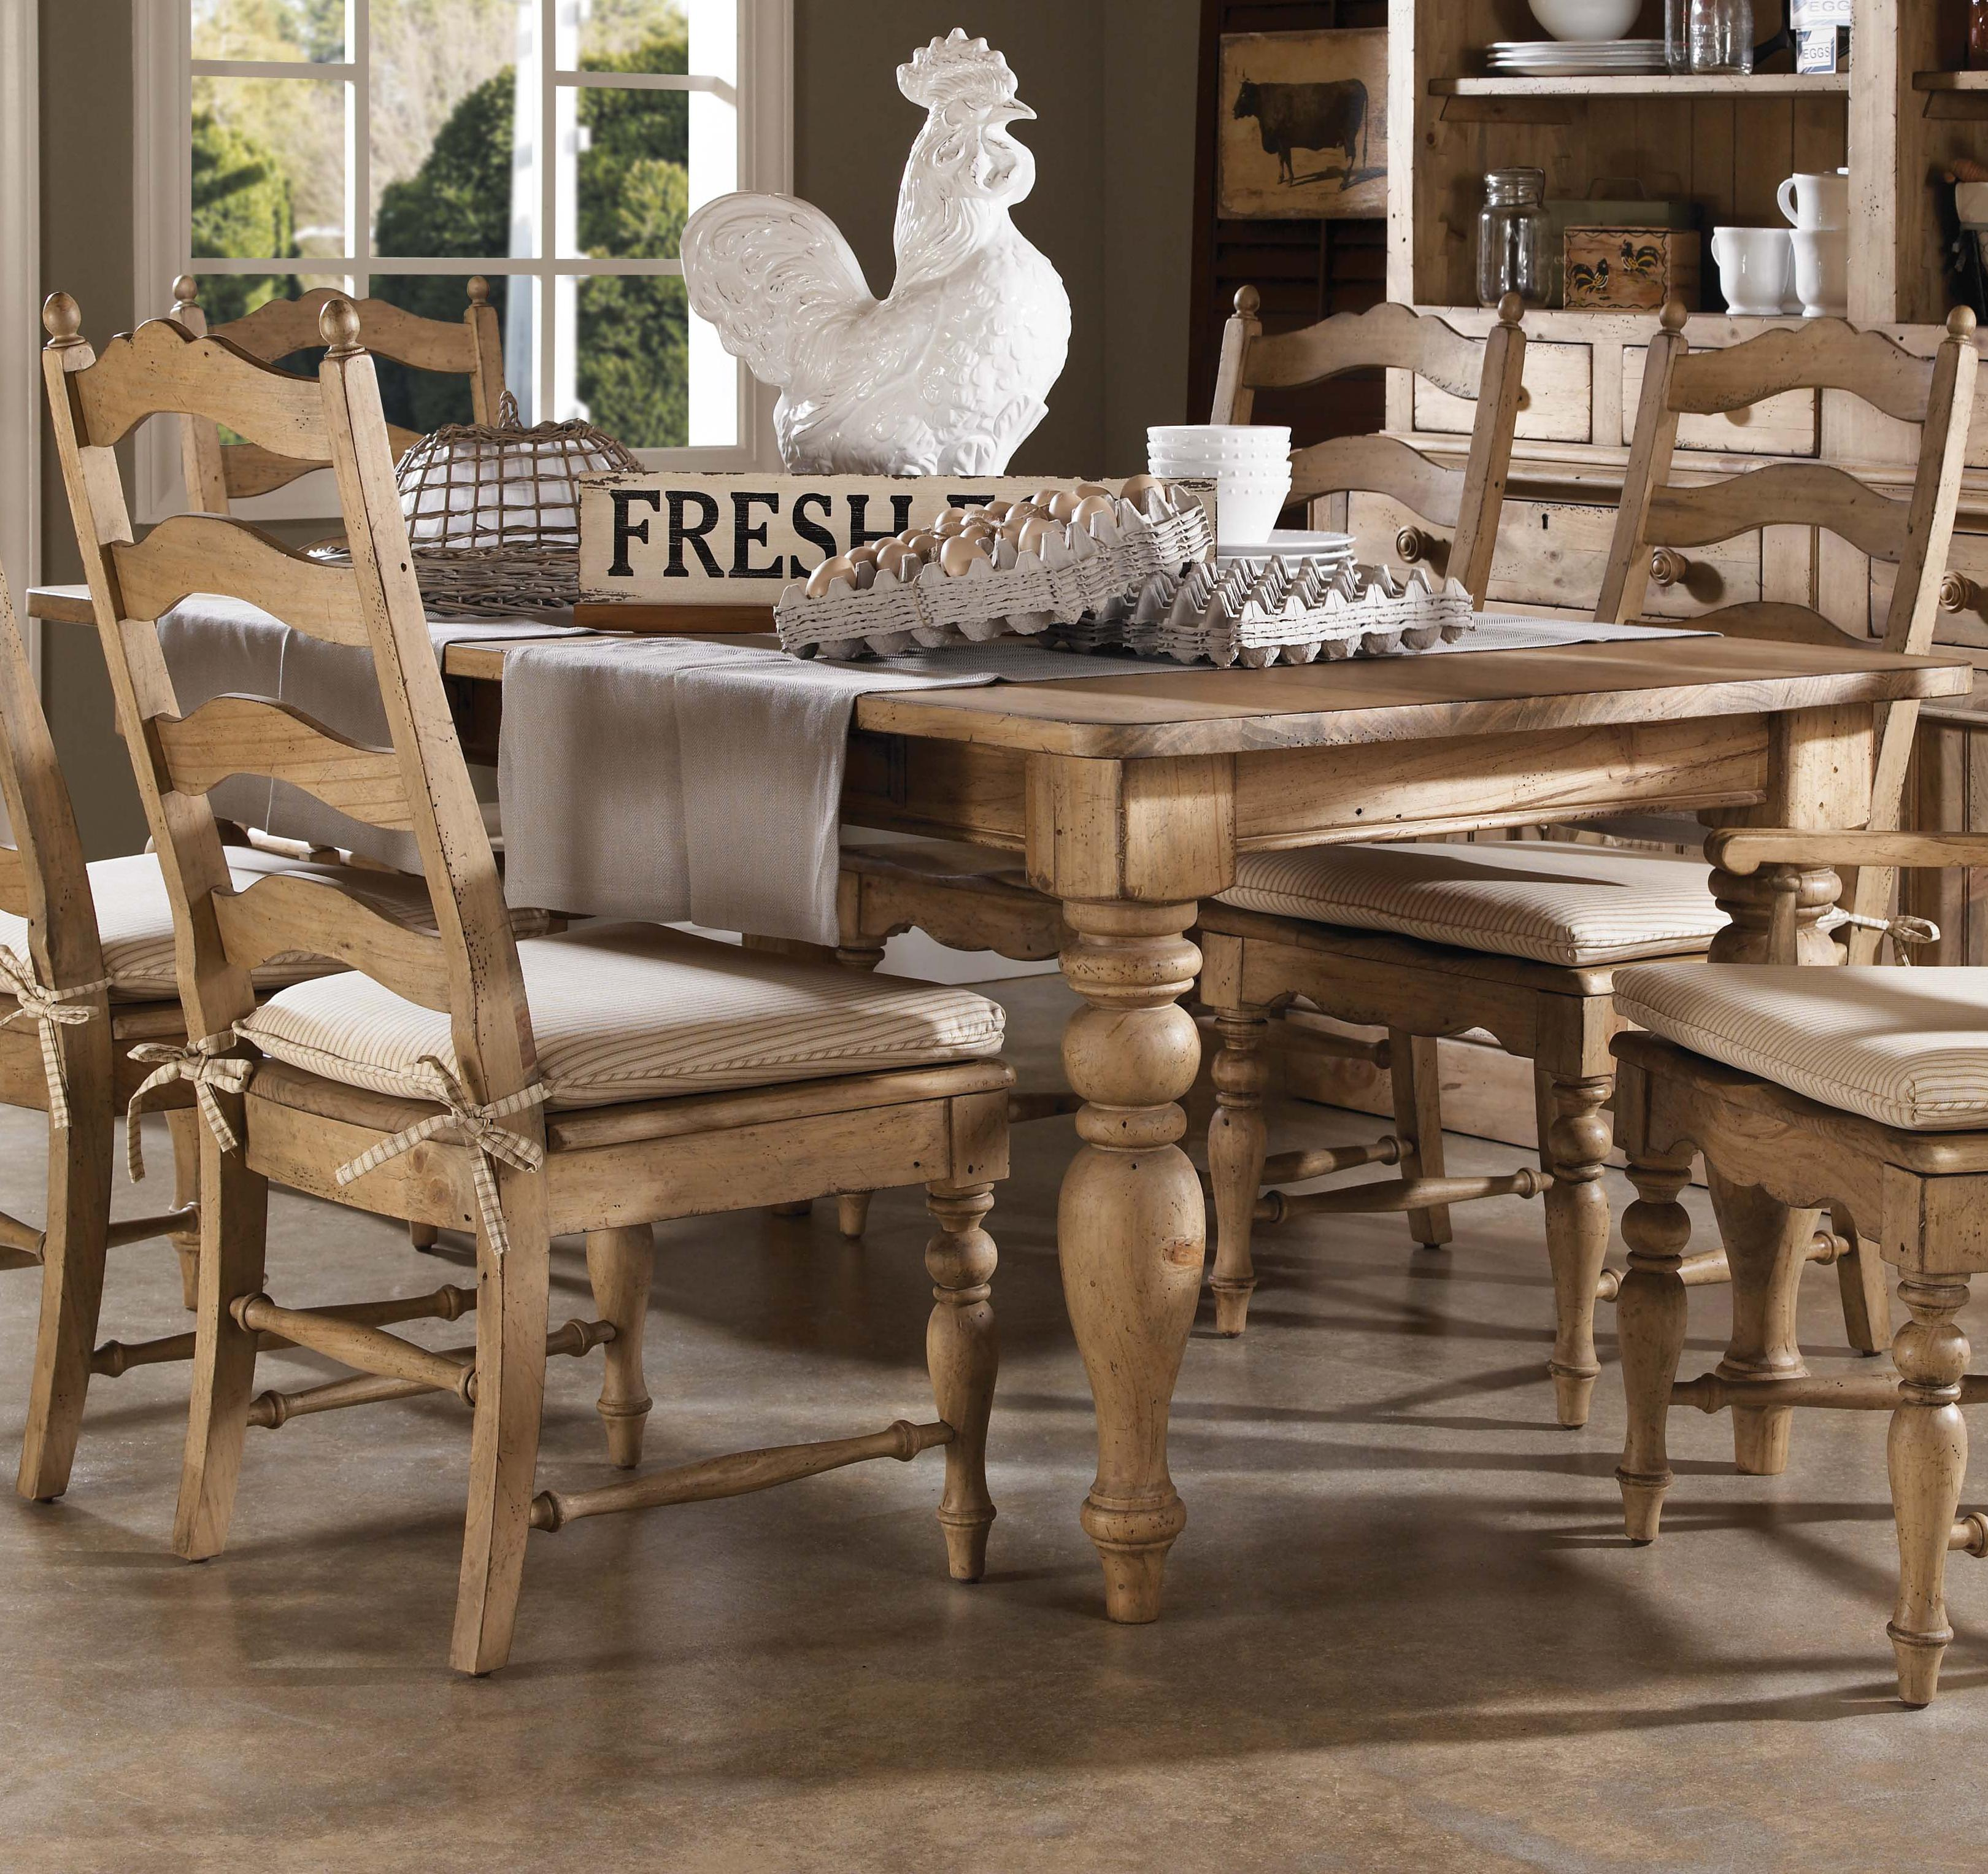 Home ing Farmhouse Leg Table with Four Drawers by Kincaid Furniture